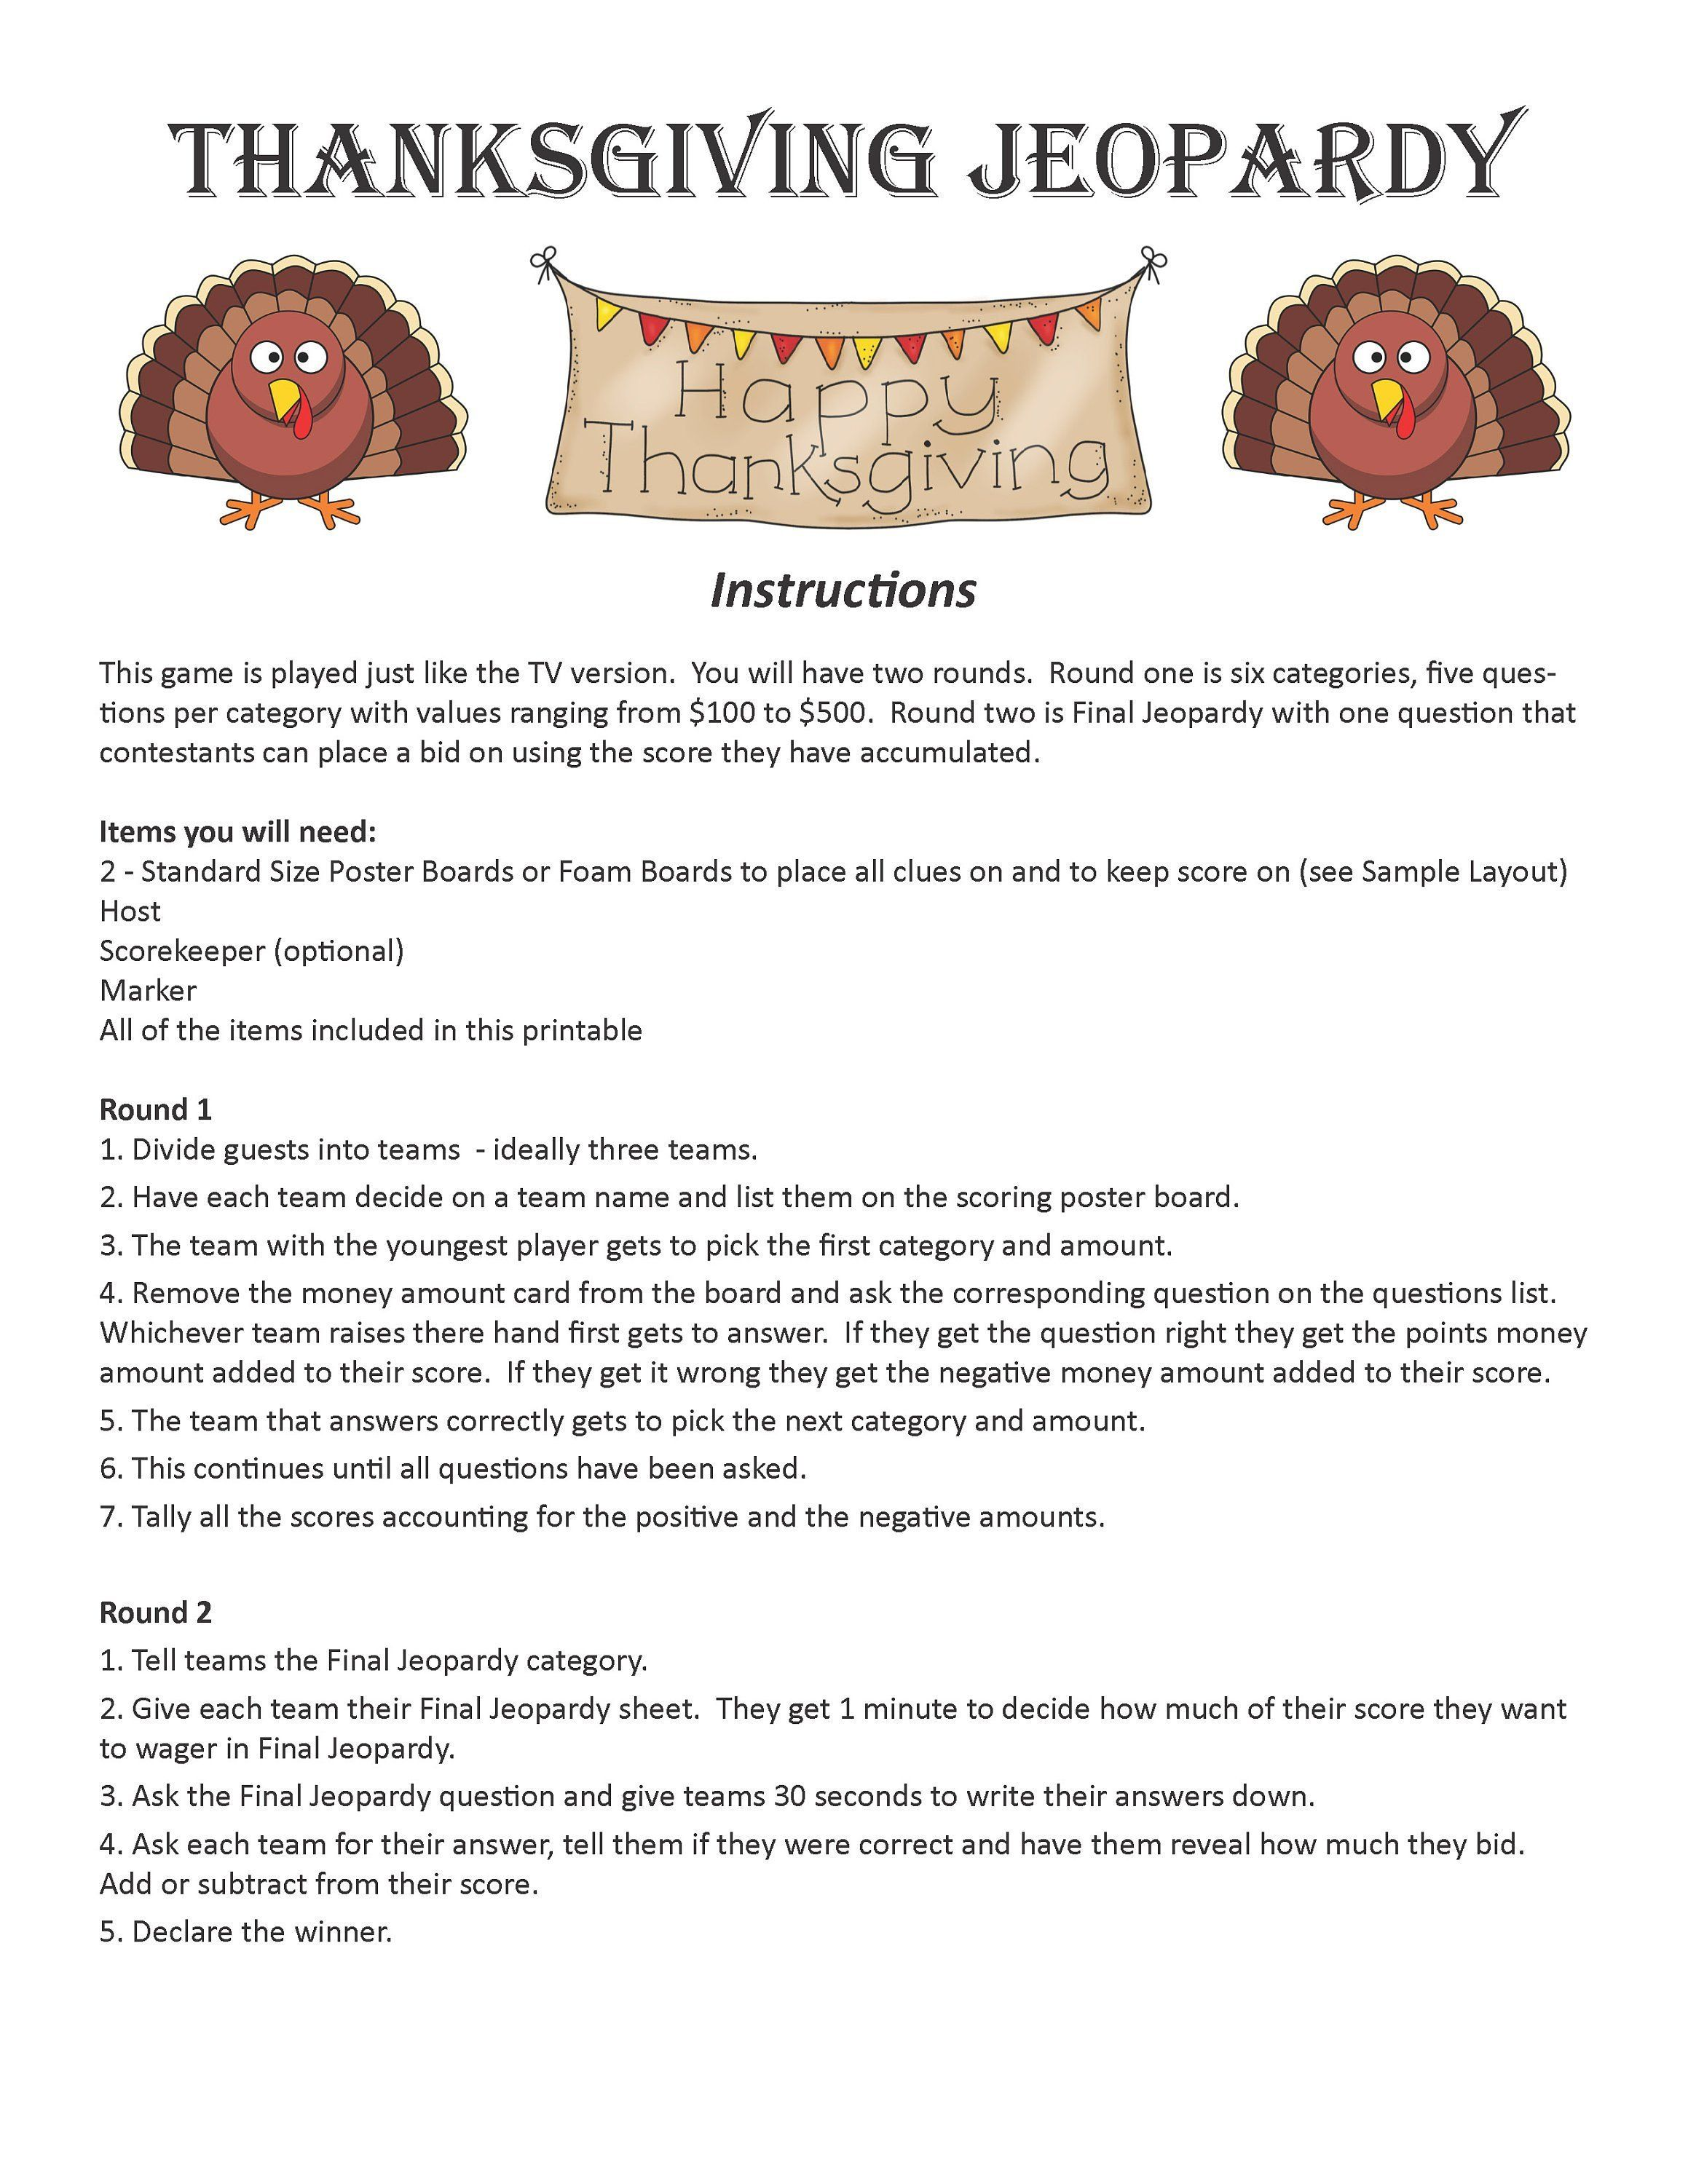 Thanksgiving Jeopardy DIGITAL DOWNLOAD, Trivia Game